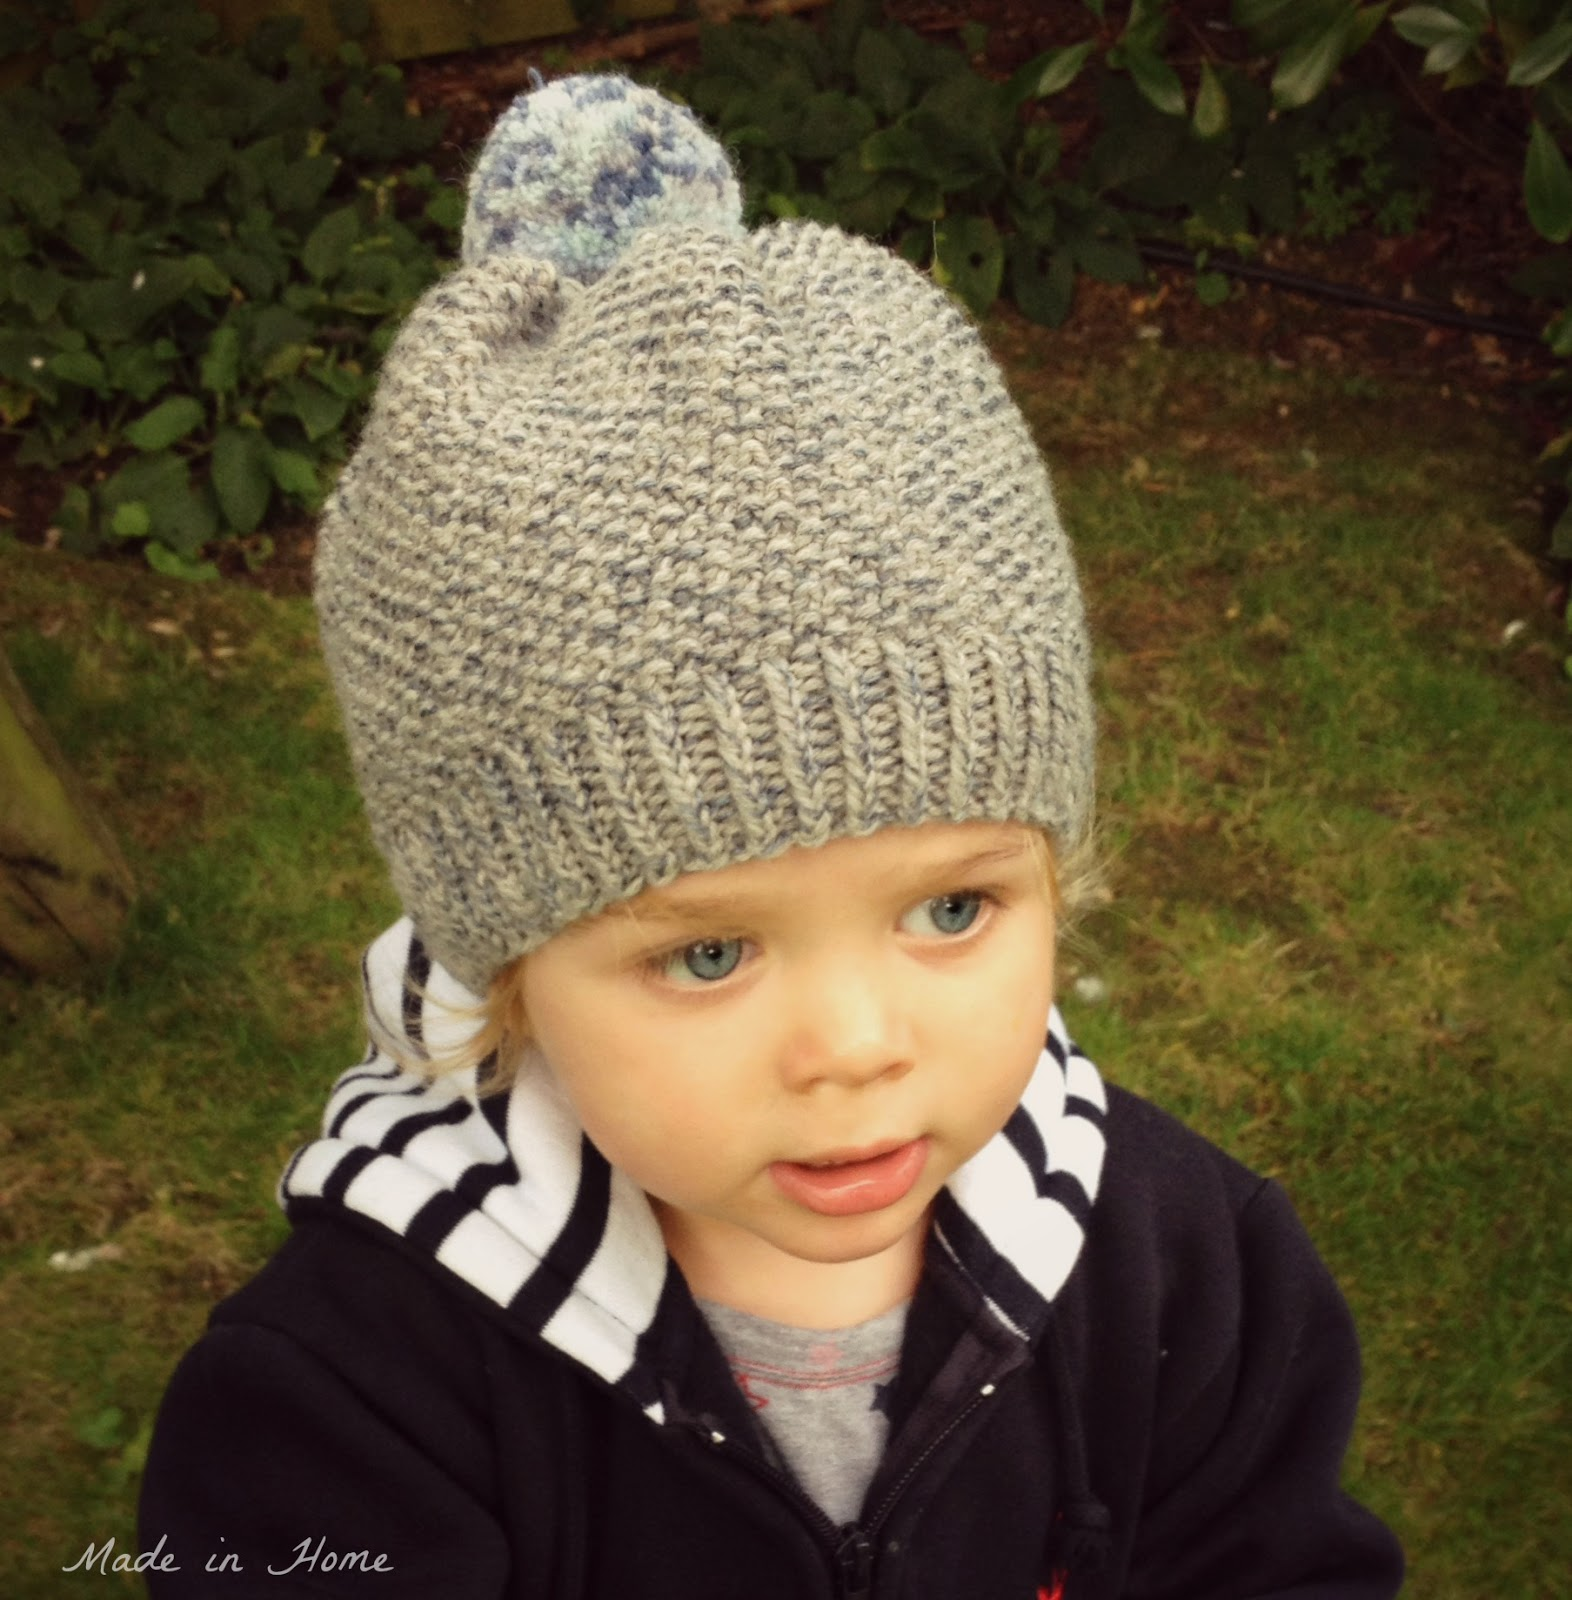 Here's another round of cuteness with this collection of knitted hats for babies, toddlers and older (some patterns even go up to Adult sized if you like). Plenty of styles to choose from ranging from bonnets, toques, ear flaps and pom poms to fun character designs. I'll be adding to this list.